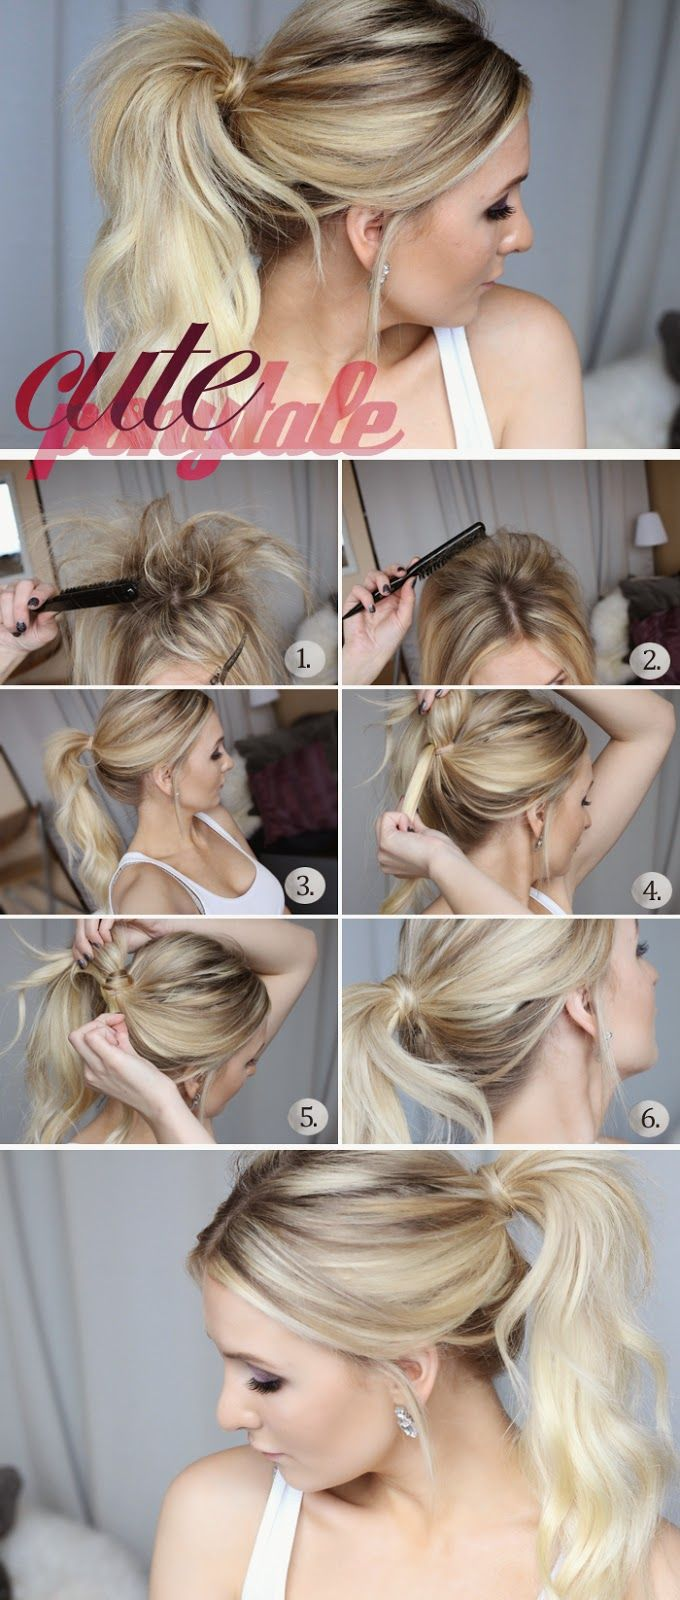 How to Chic: CUTE PONYTAIL - TUTORIAL ♡ Follow me ! I love making new Pinterest buddies . I have really amazing boards. †